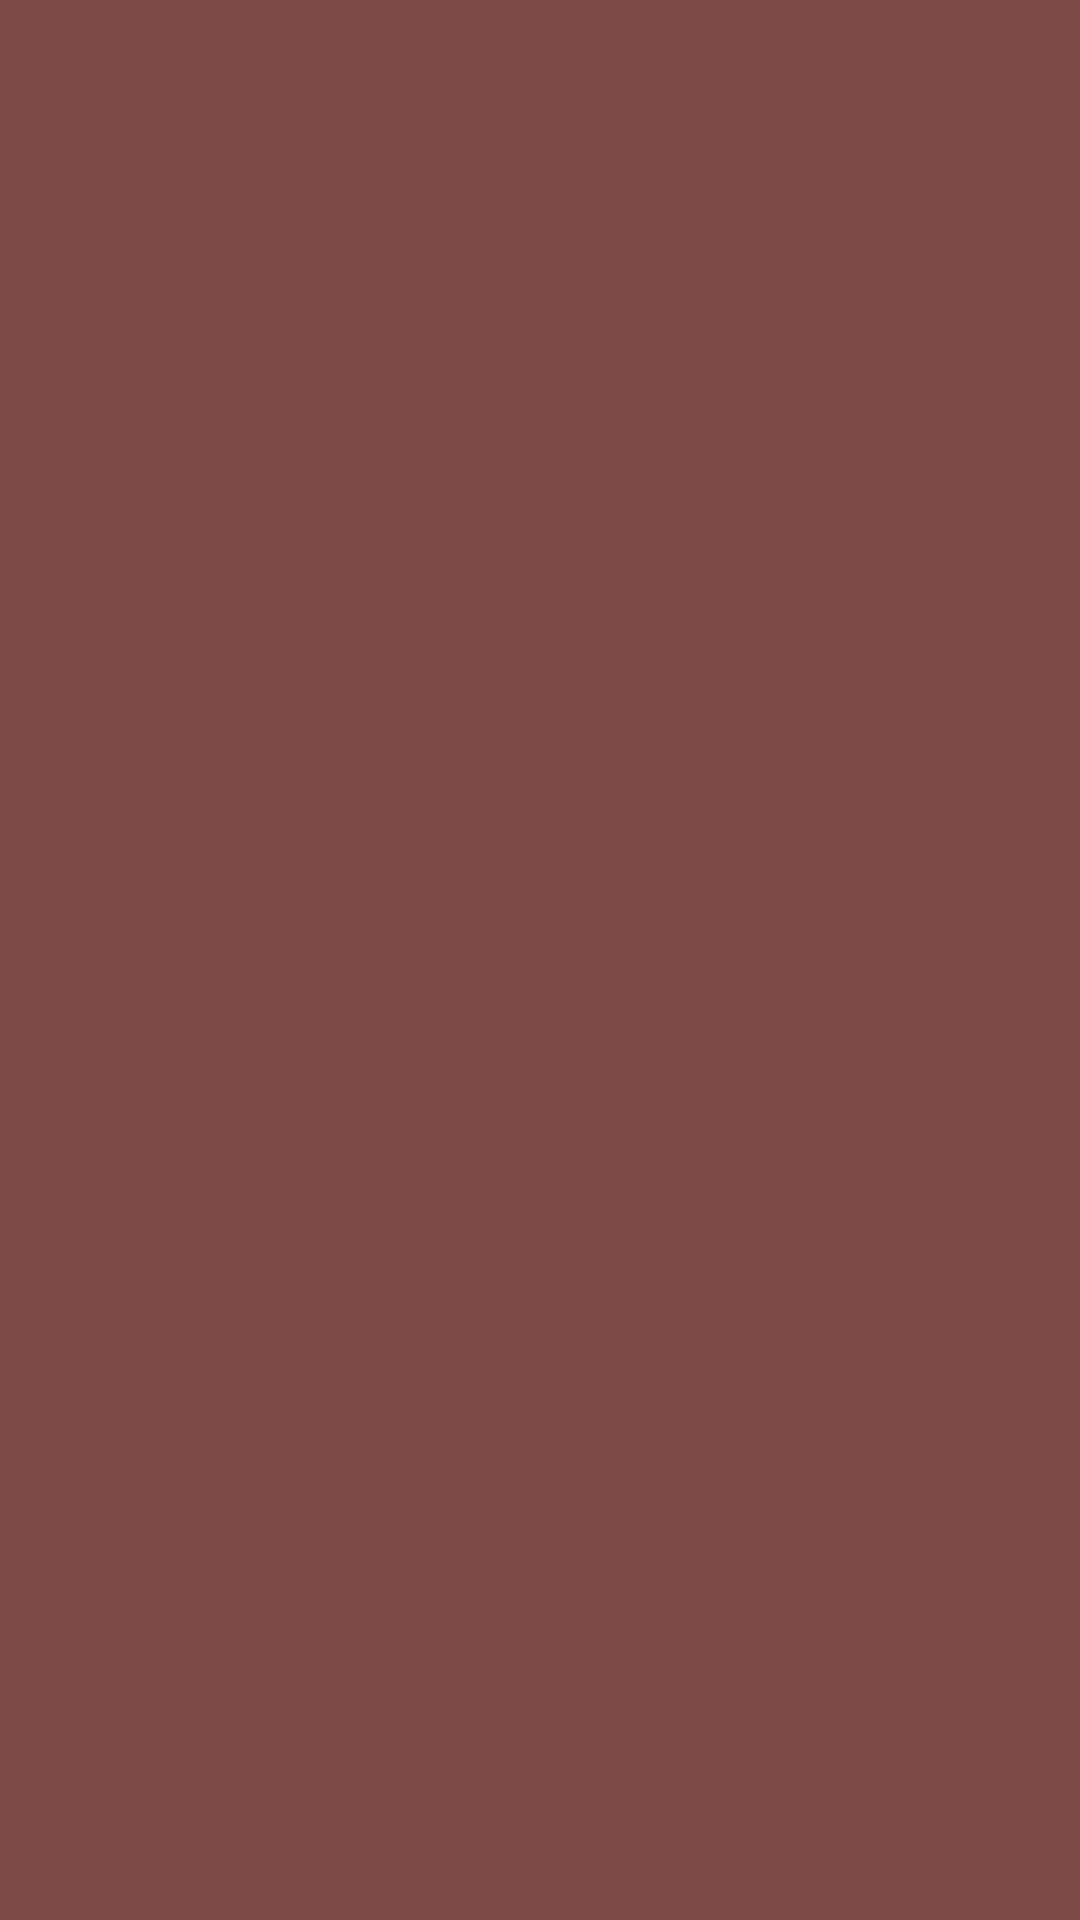 1080x1920 Tuscan Red Solid Color Background